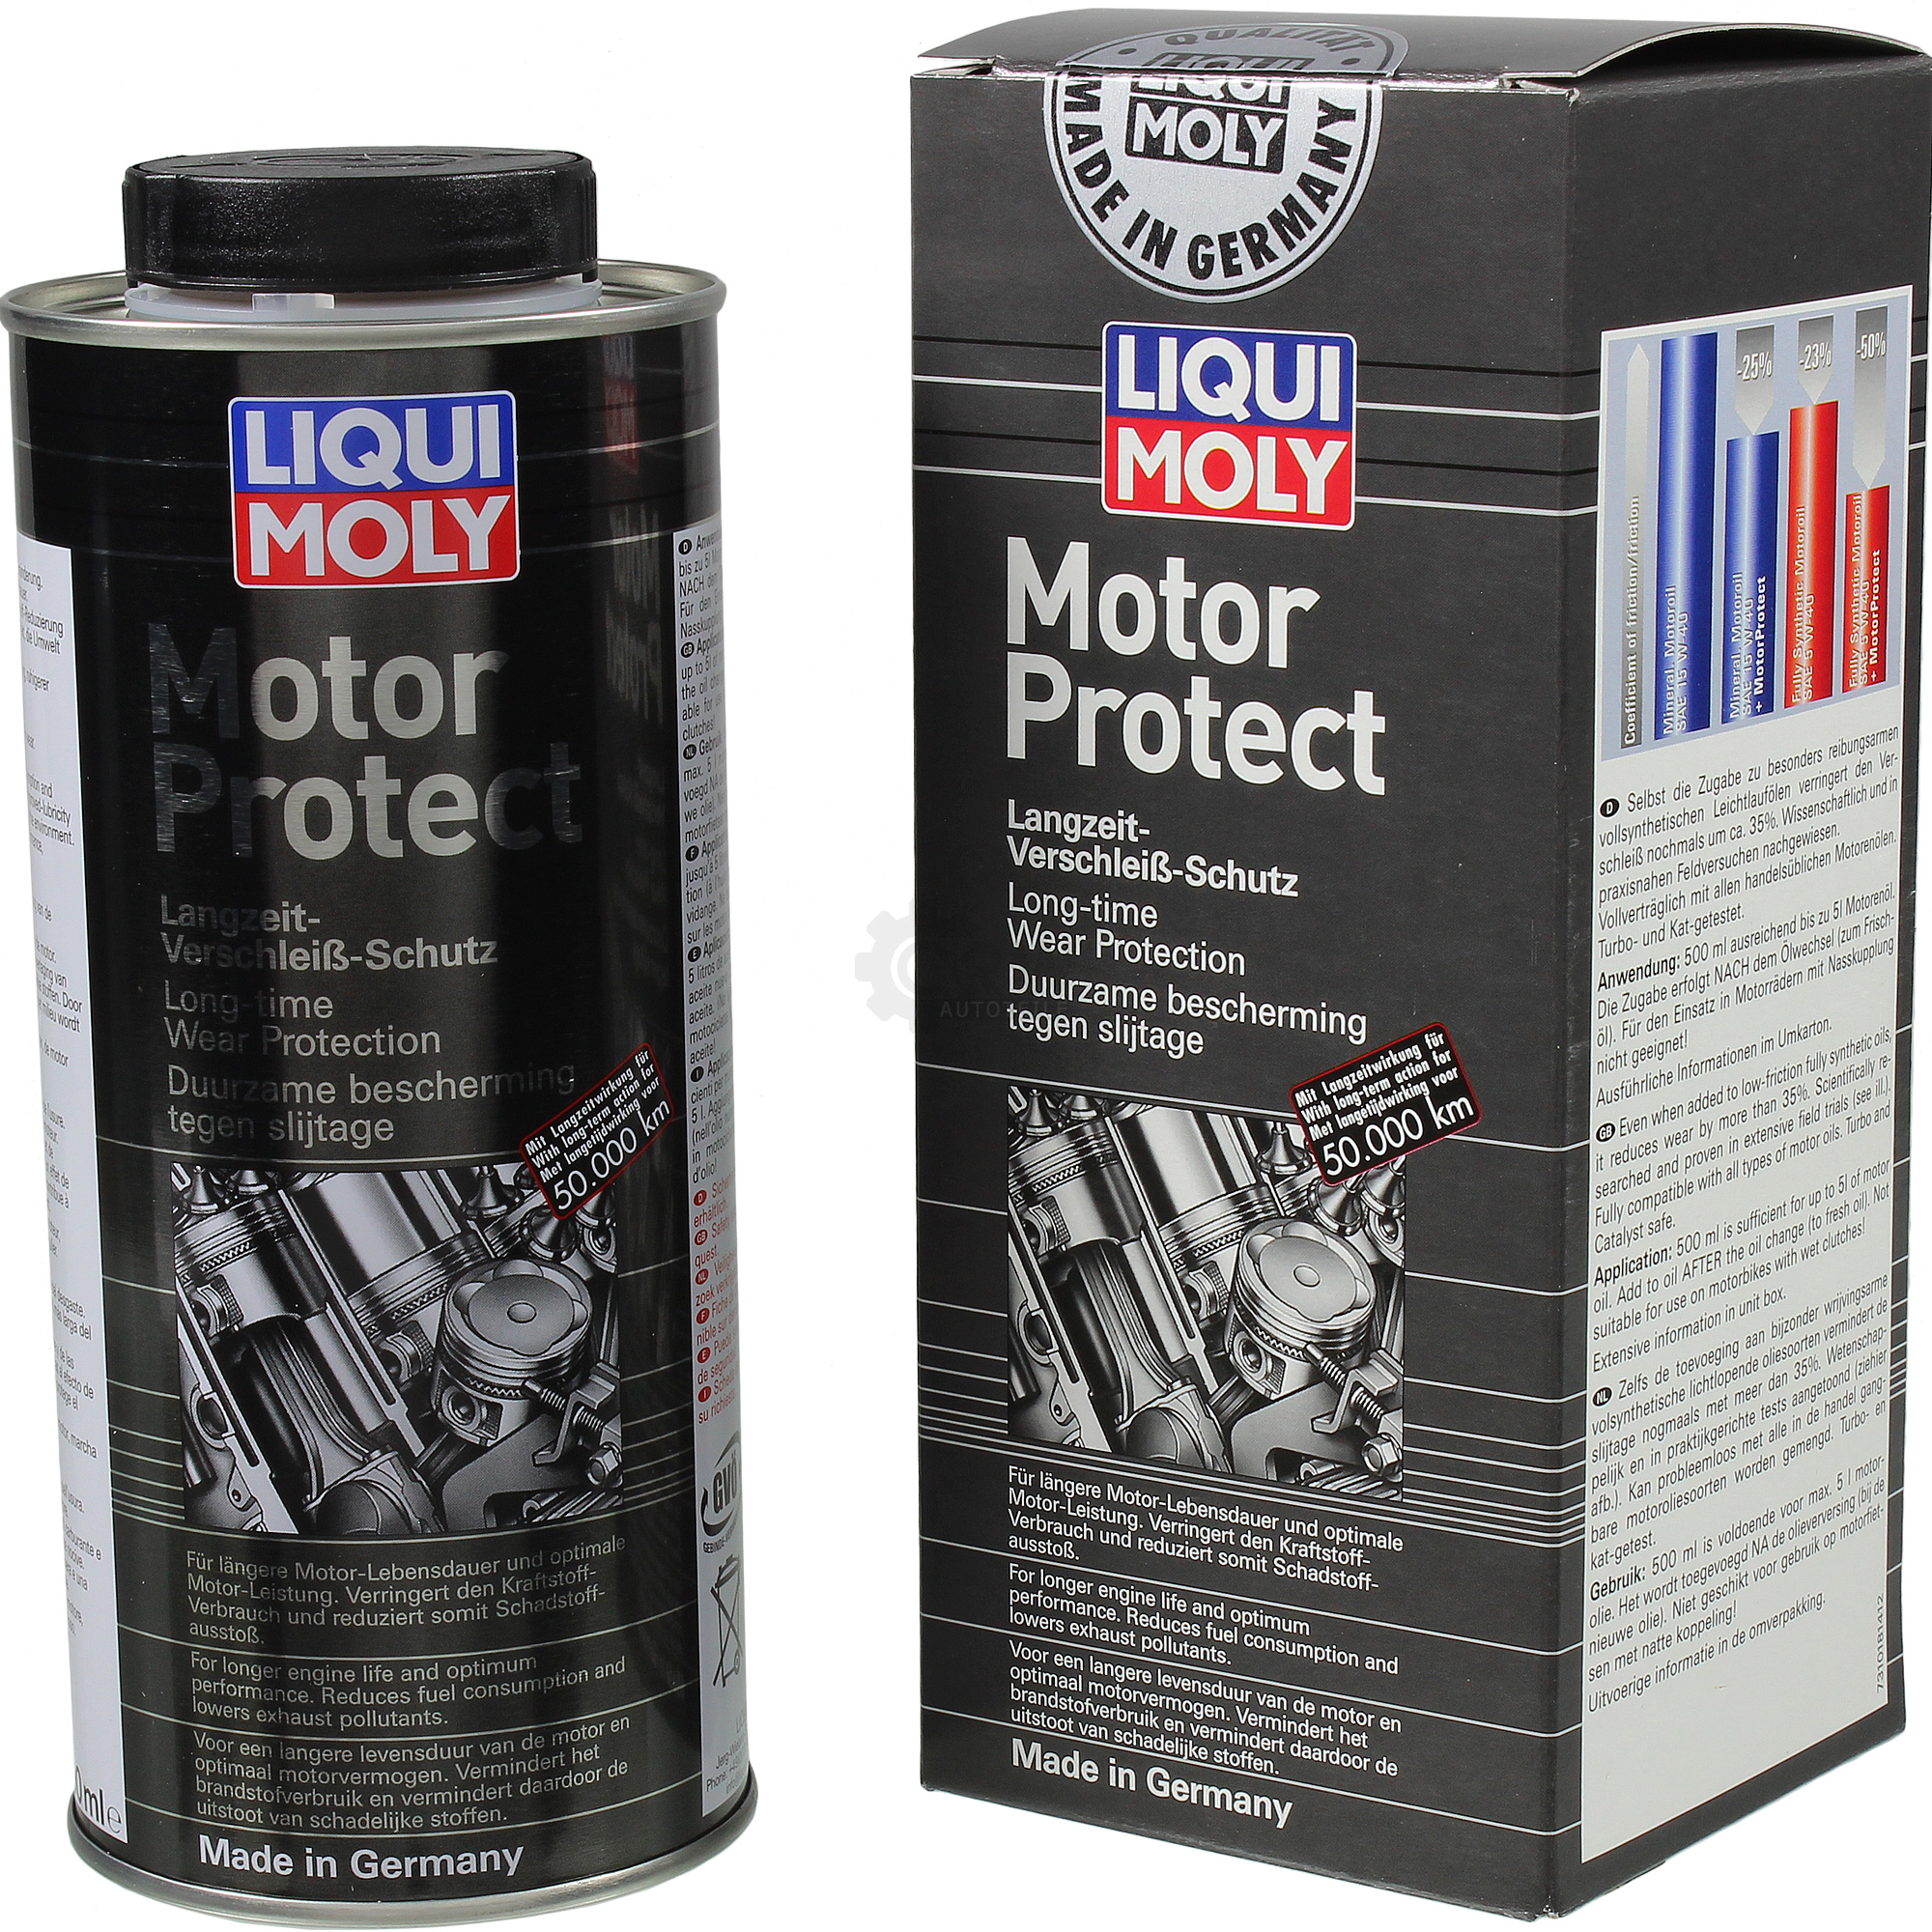 liqui moly ventil sauber motorclean motorprotect und cera. Black Bedroom Furniture Sets. Home Design Ideas